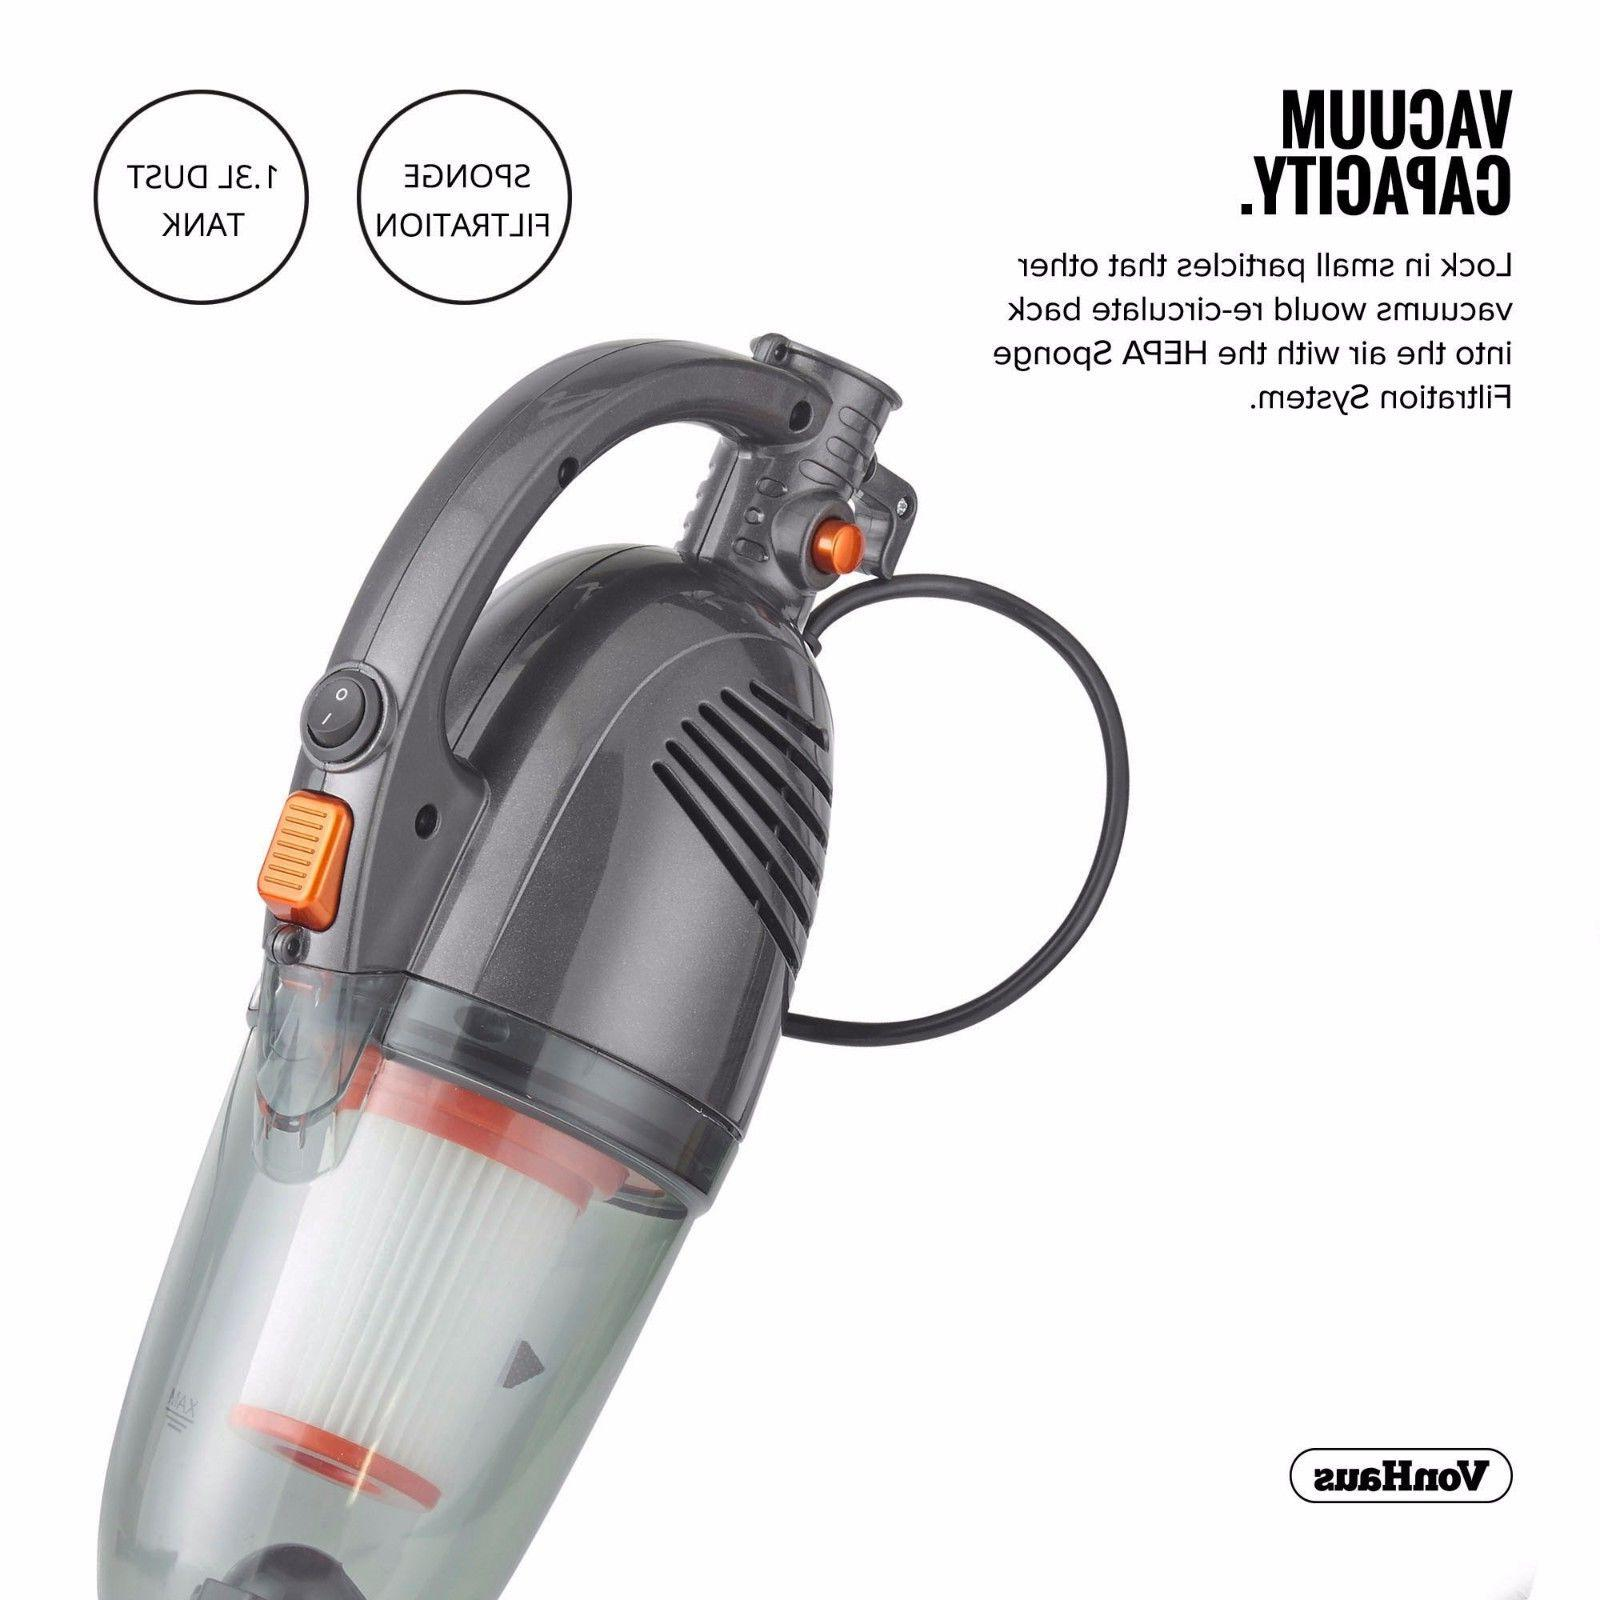 VonHaus in Corded Handheld Cleaner Lightweight